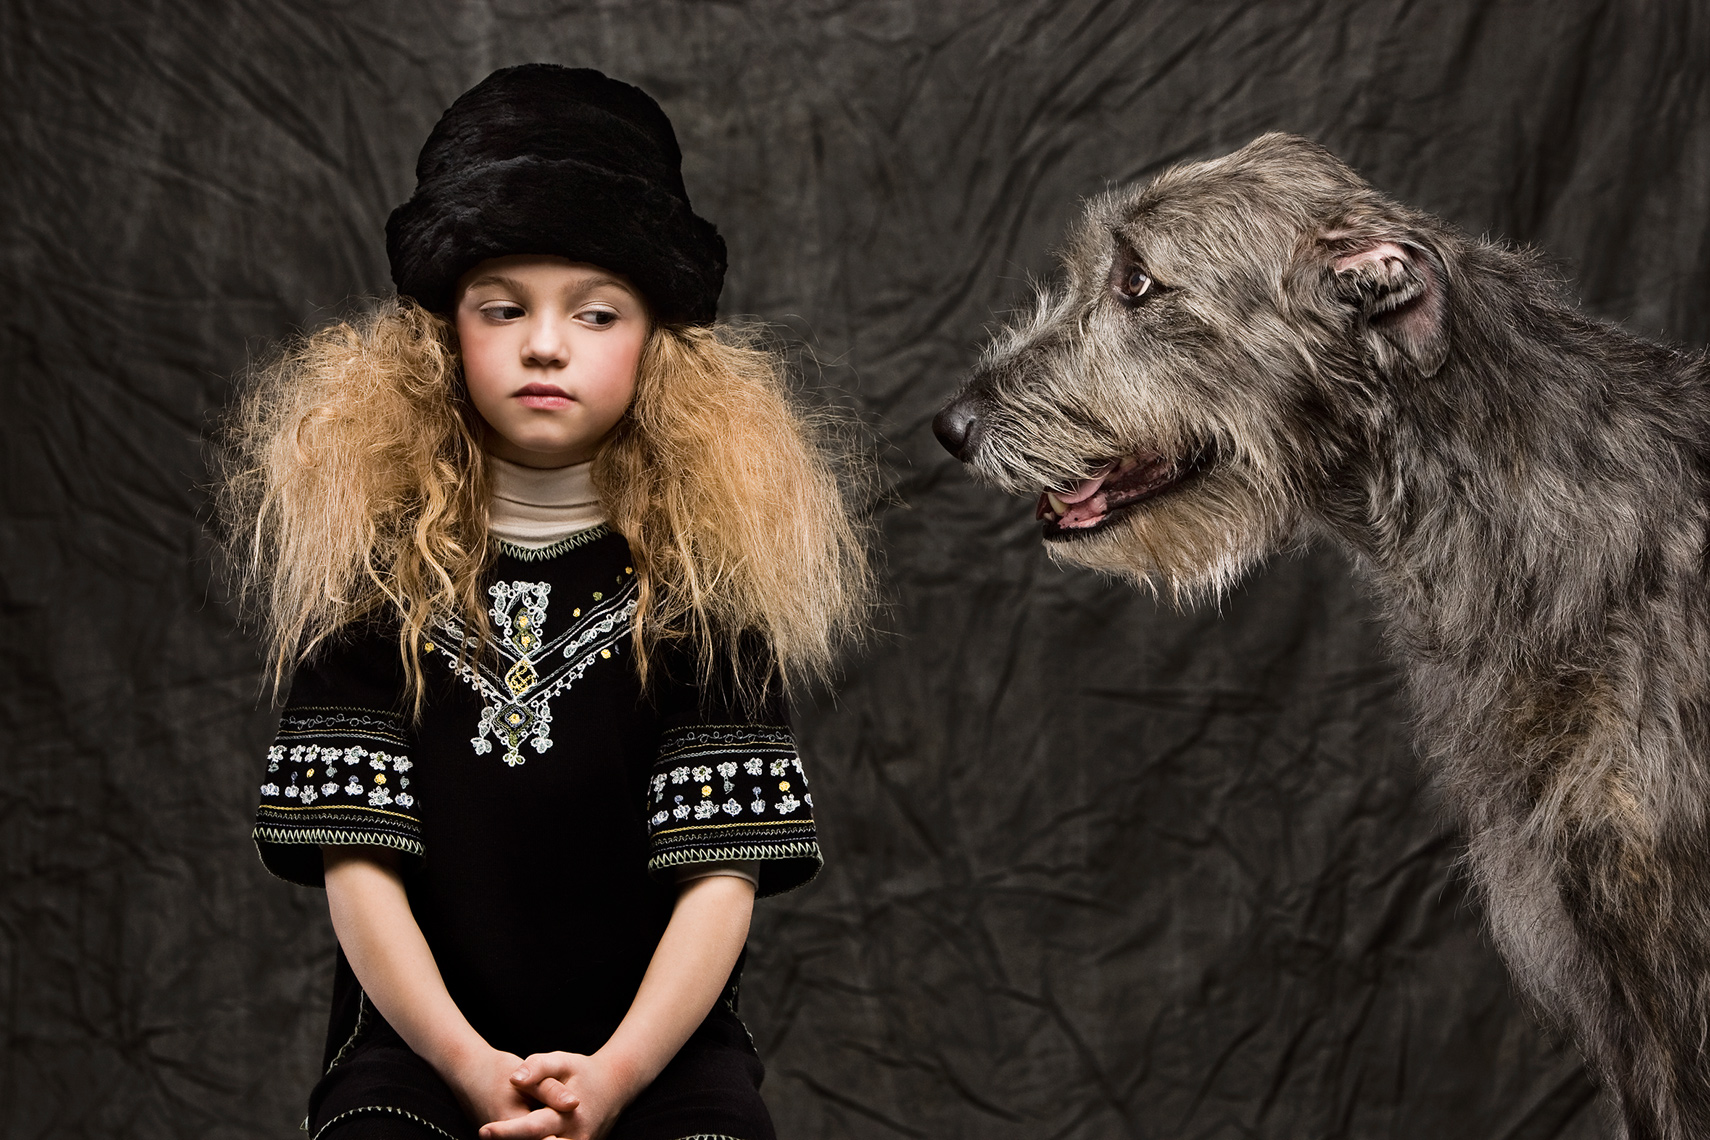 Irish Wolfhound, Michael Brian Kids Photography, Los Angeles, Earnshaws kids fashion, giant dog